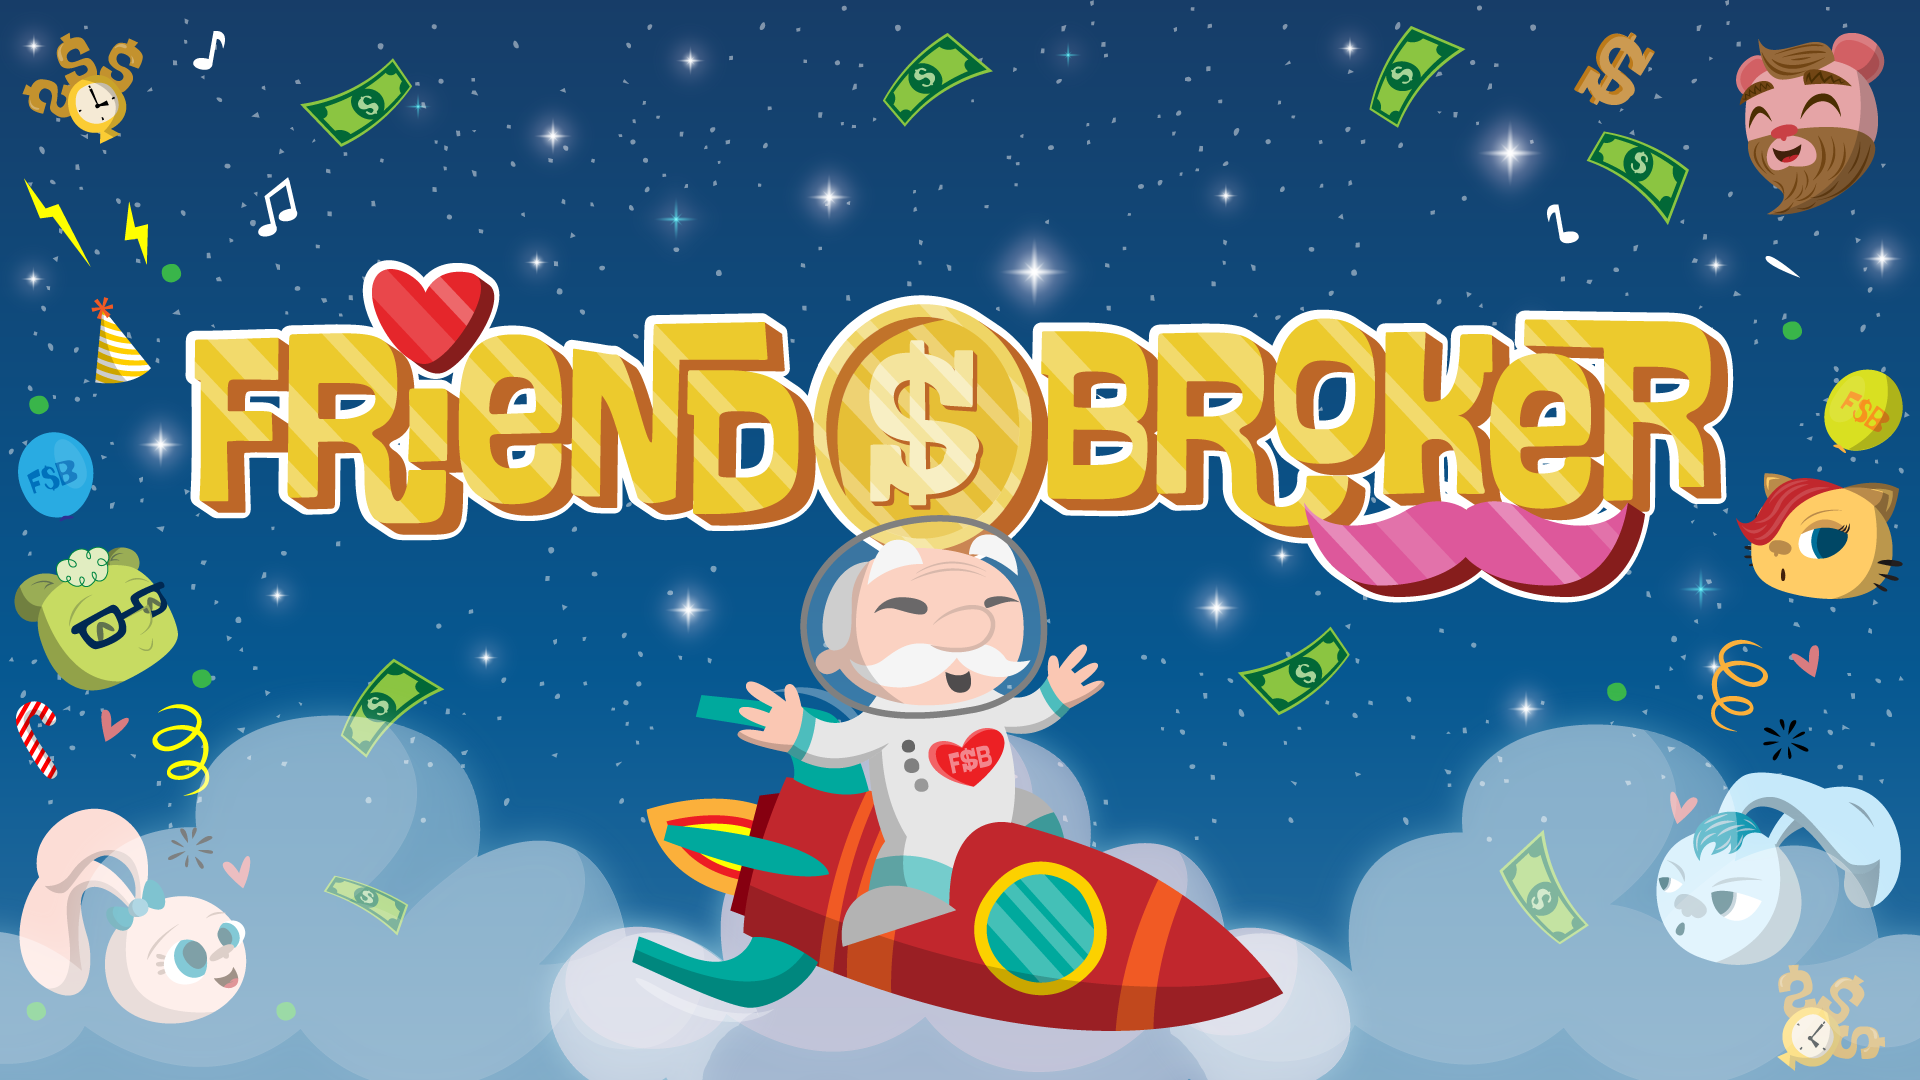 Friendsbroker